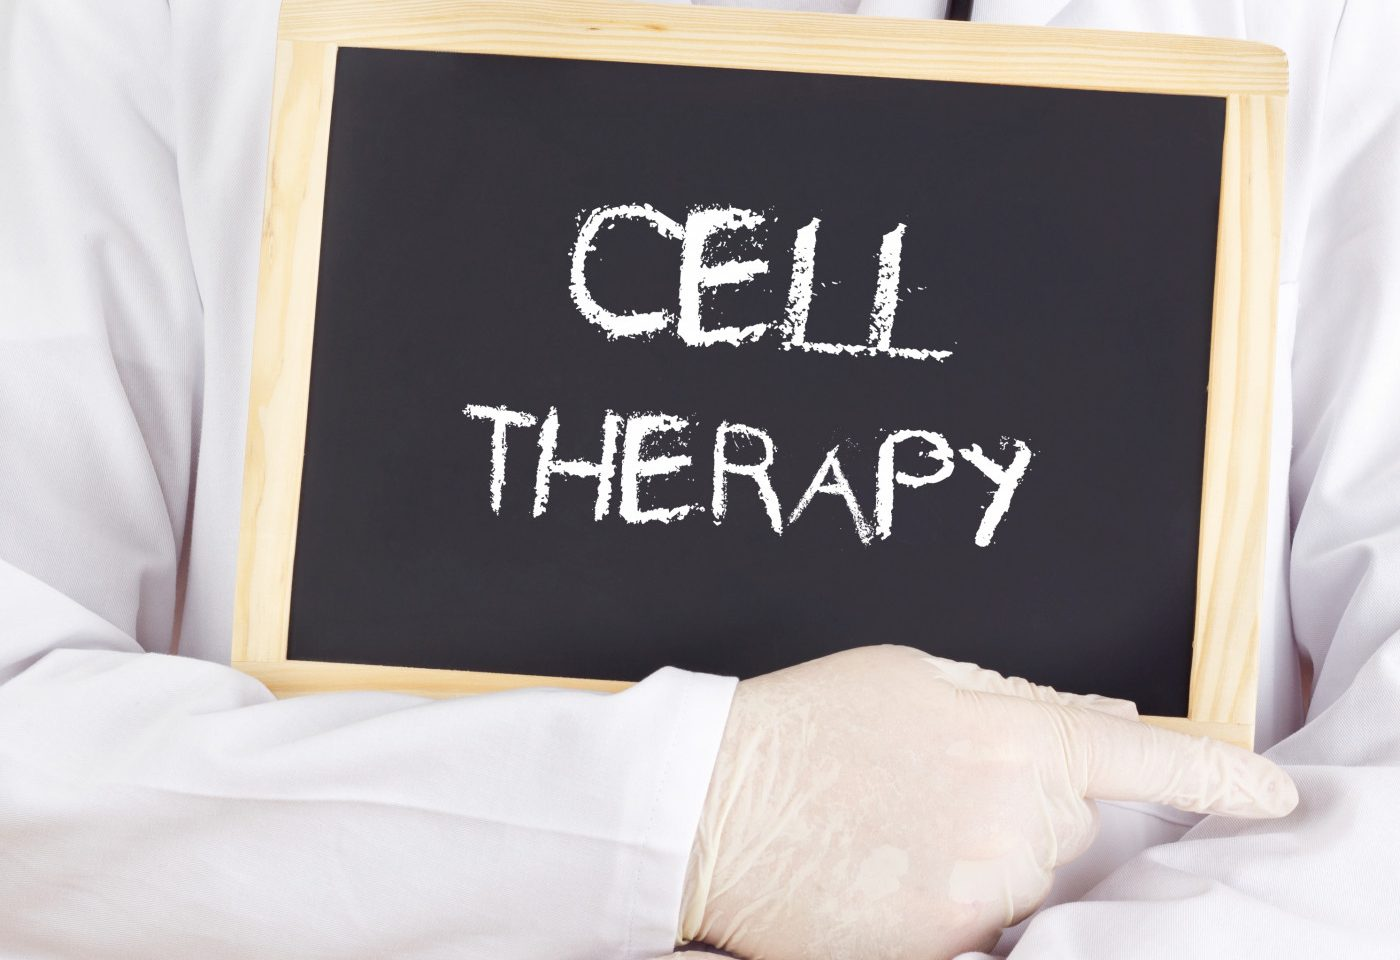 Cue Biopharma Cleared for Trial for CUE-101 Immunotherapy